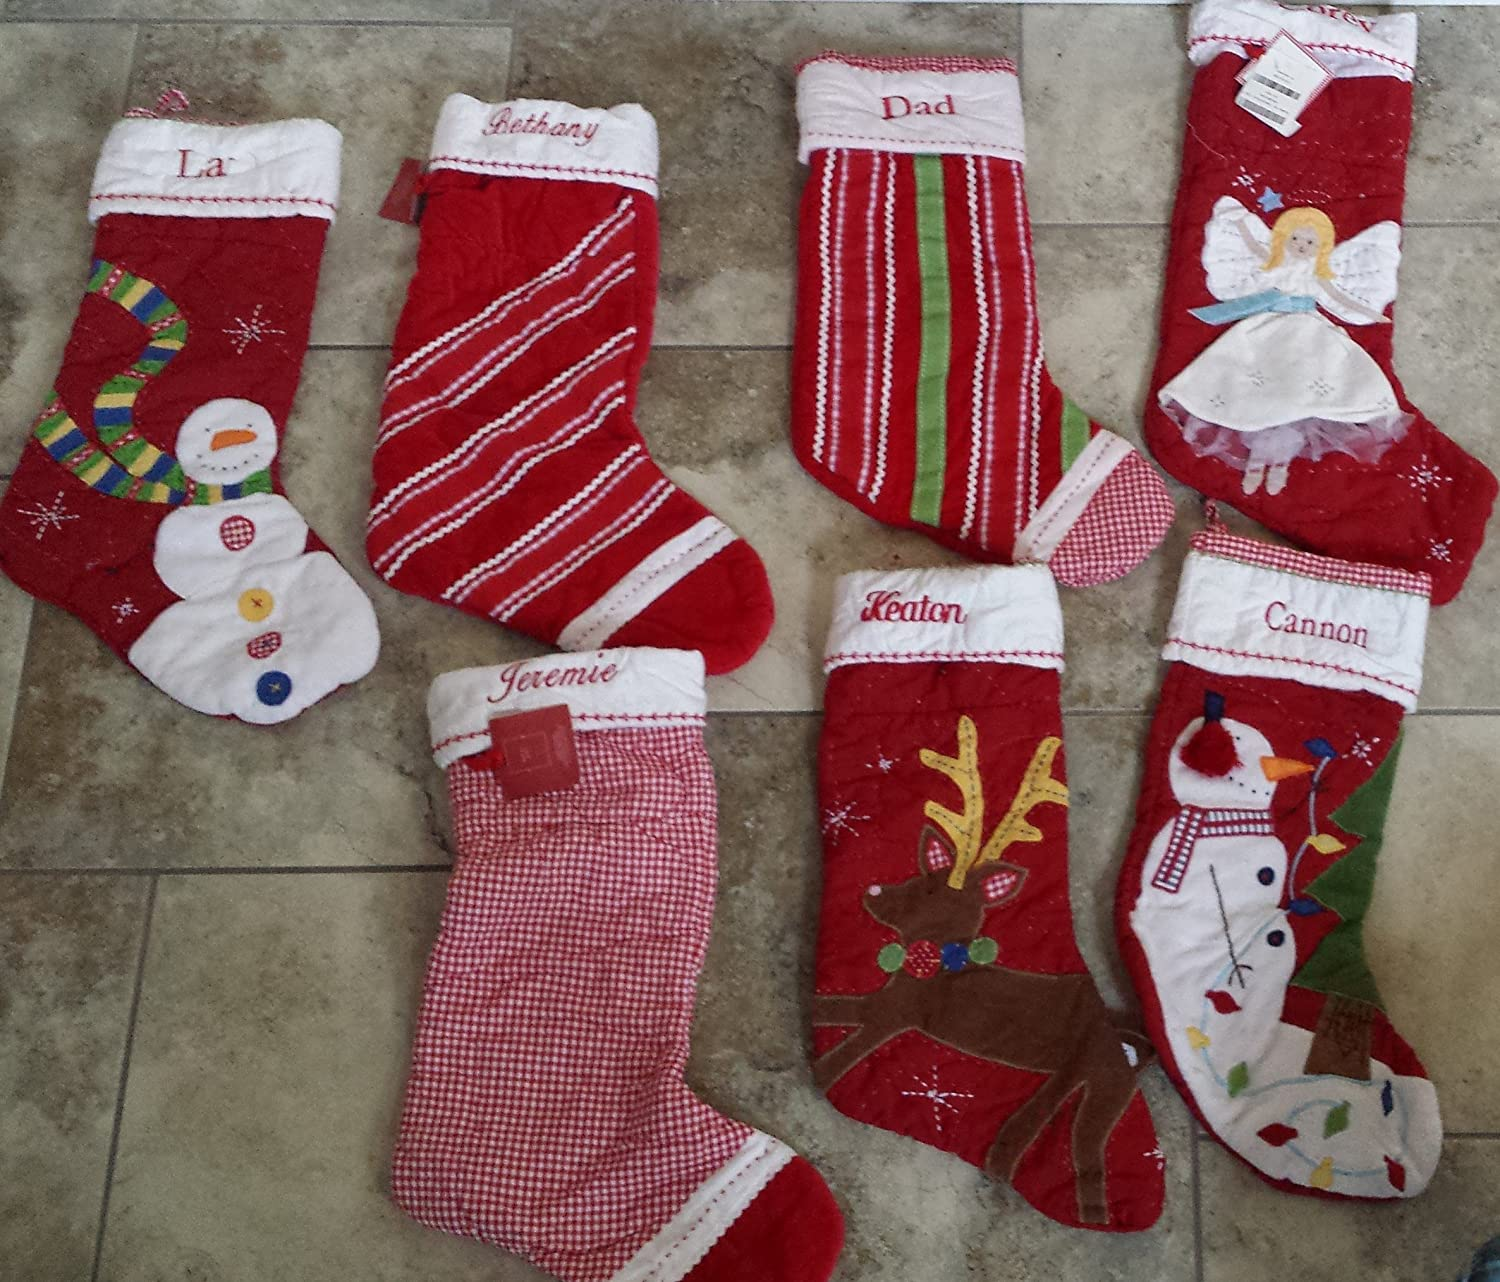 Amazon.com: New Pottery Barn Kids Quilted King Stocking-9 Patterns ... : pottery barn quilted stocking - Adamdwight.com